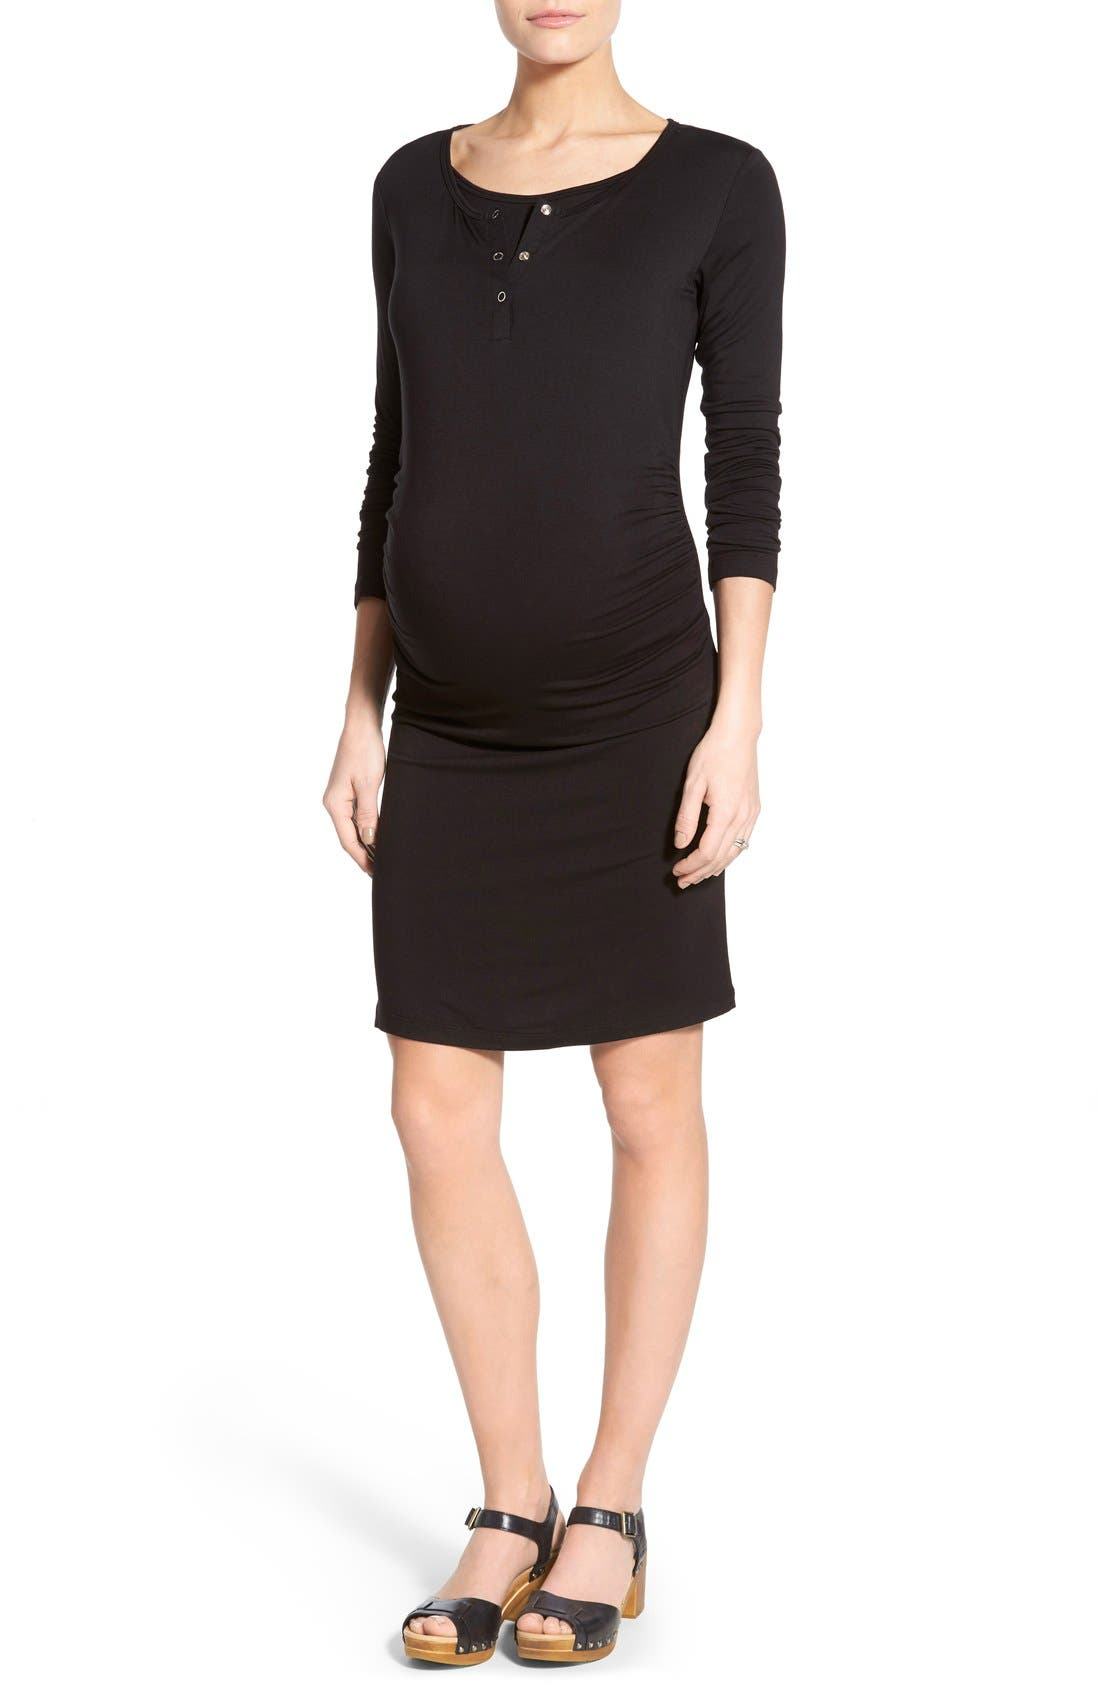 LAB40 'Wendy' Maternity/Nursing Midi Dress